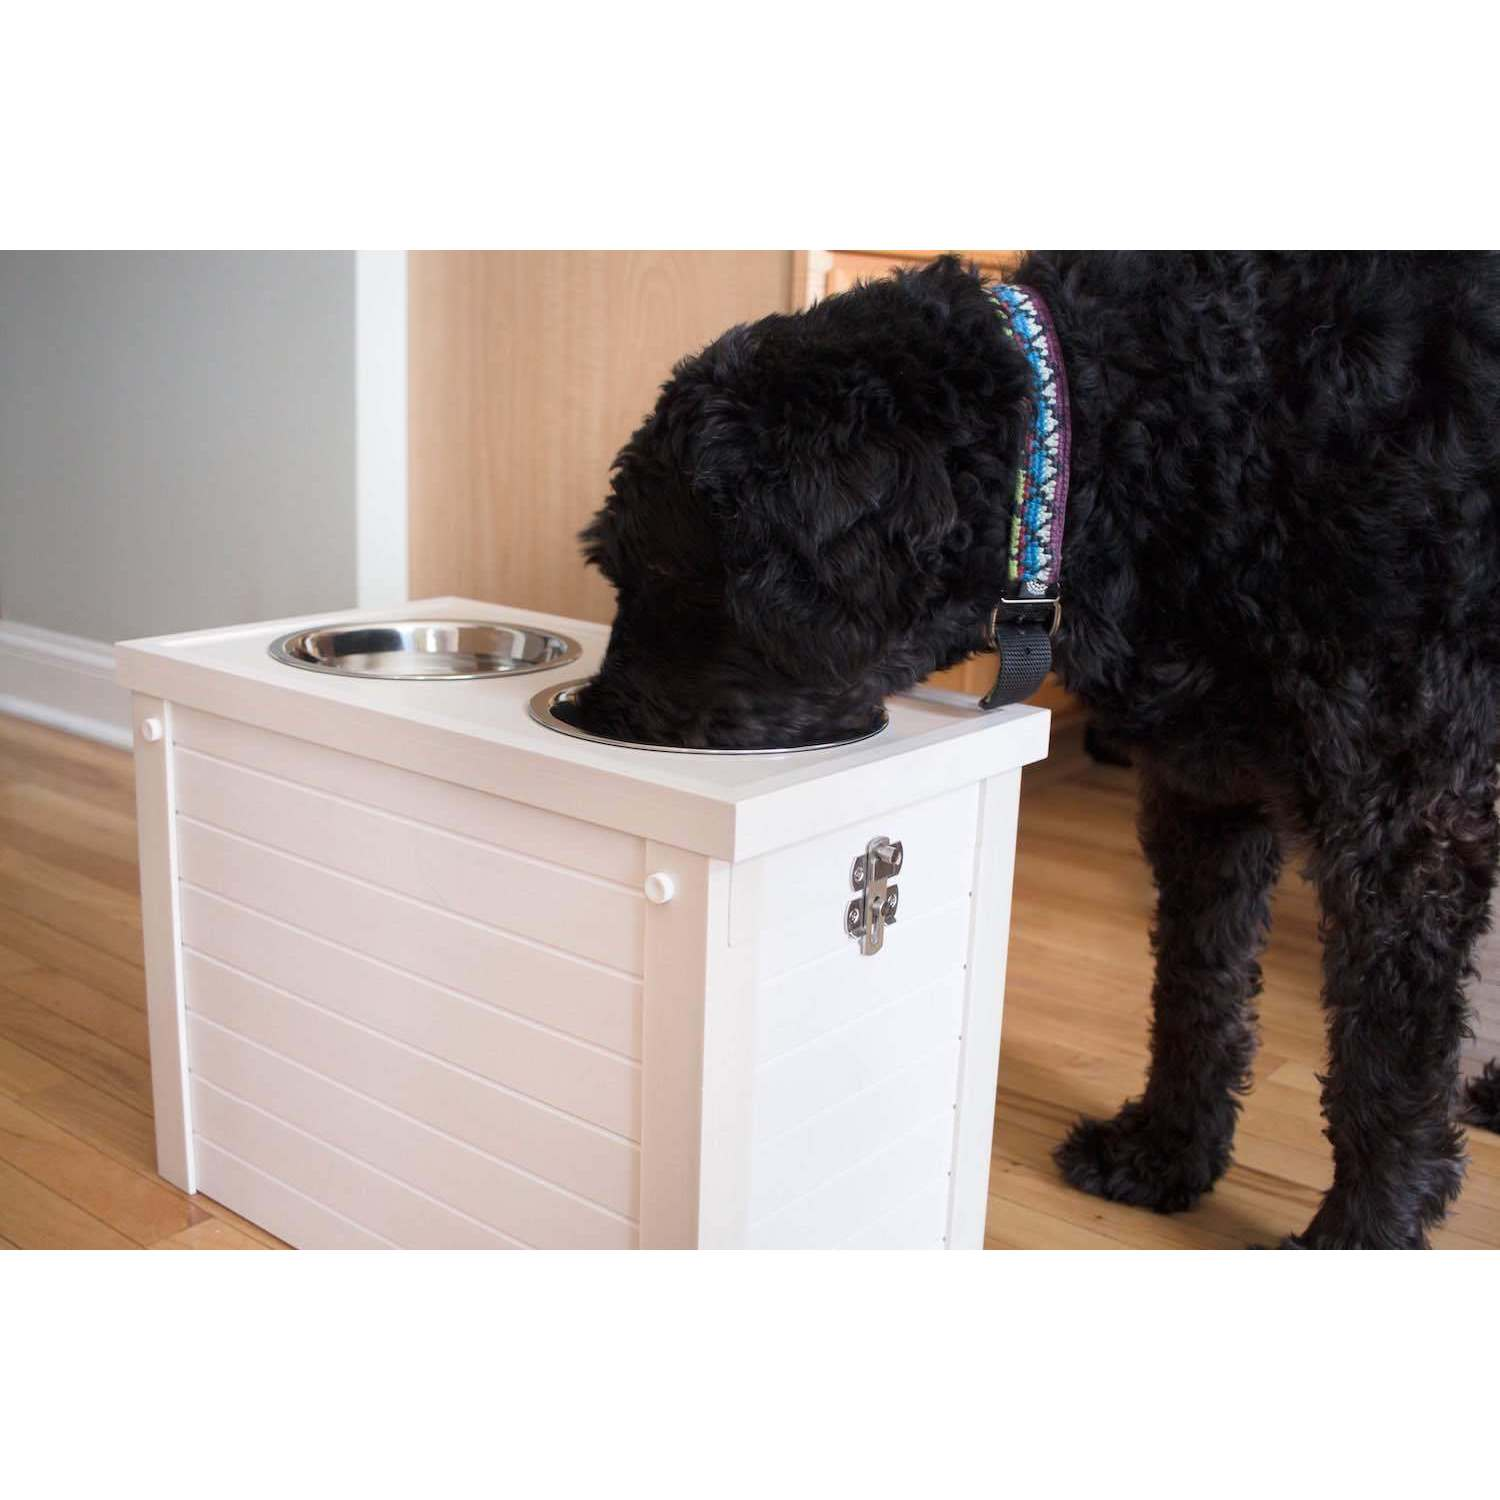 Shop EcoFlex Raised Dog Diner With Storage   Free Shipping Today    Overstock.com   14000126